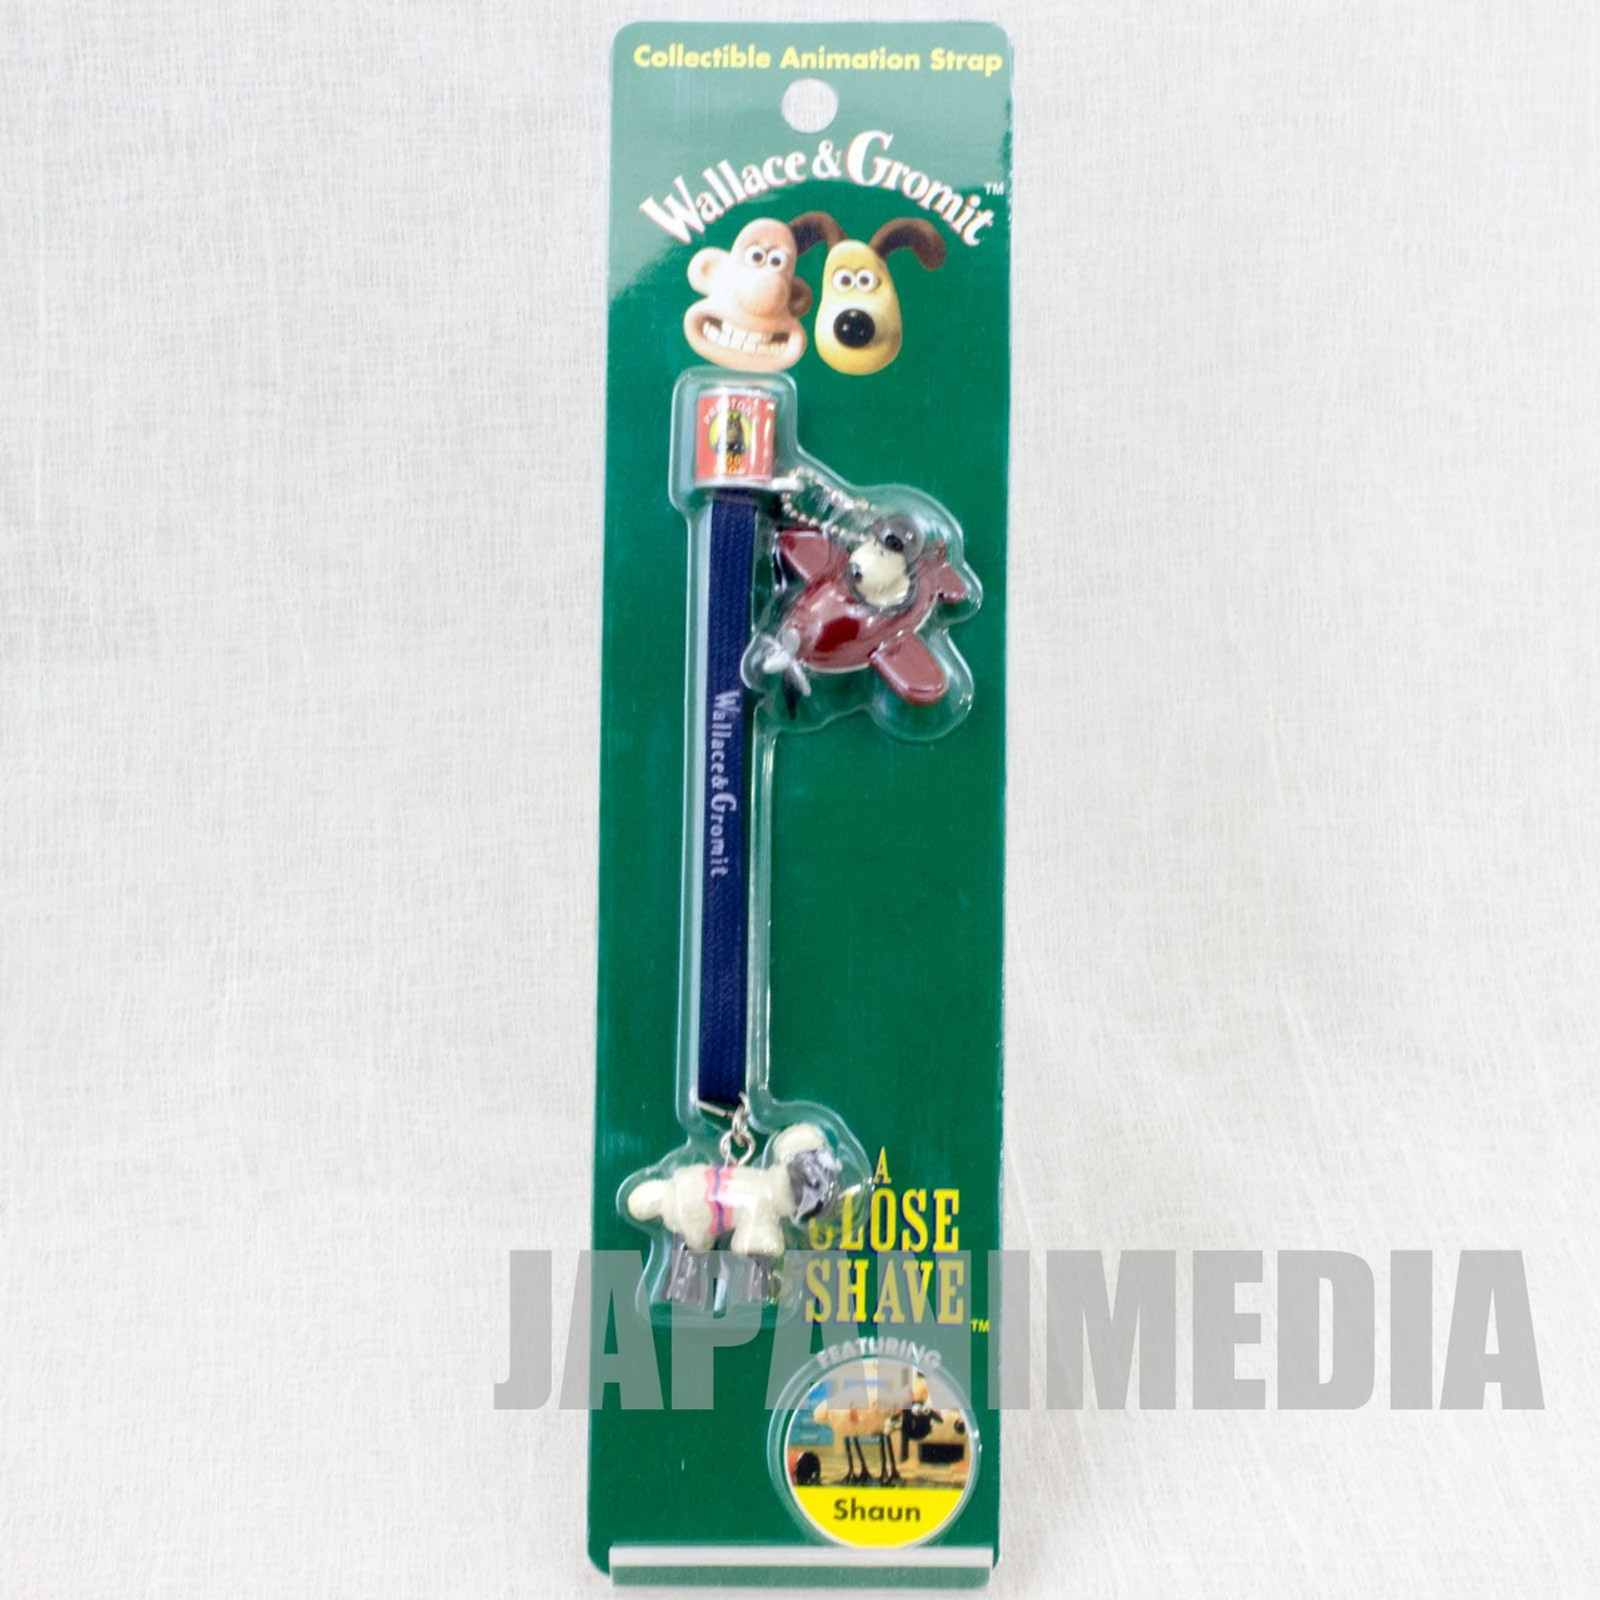 Wallace & Gromit Shaun Figure Collectible Animation Strap JAPAN Ardman ANIME